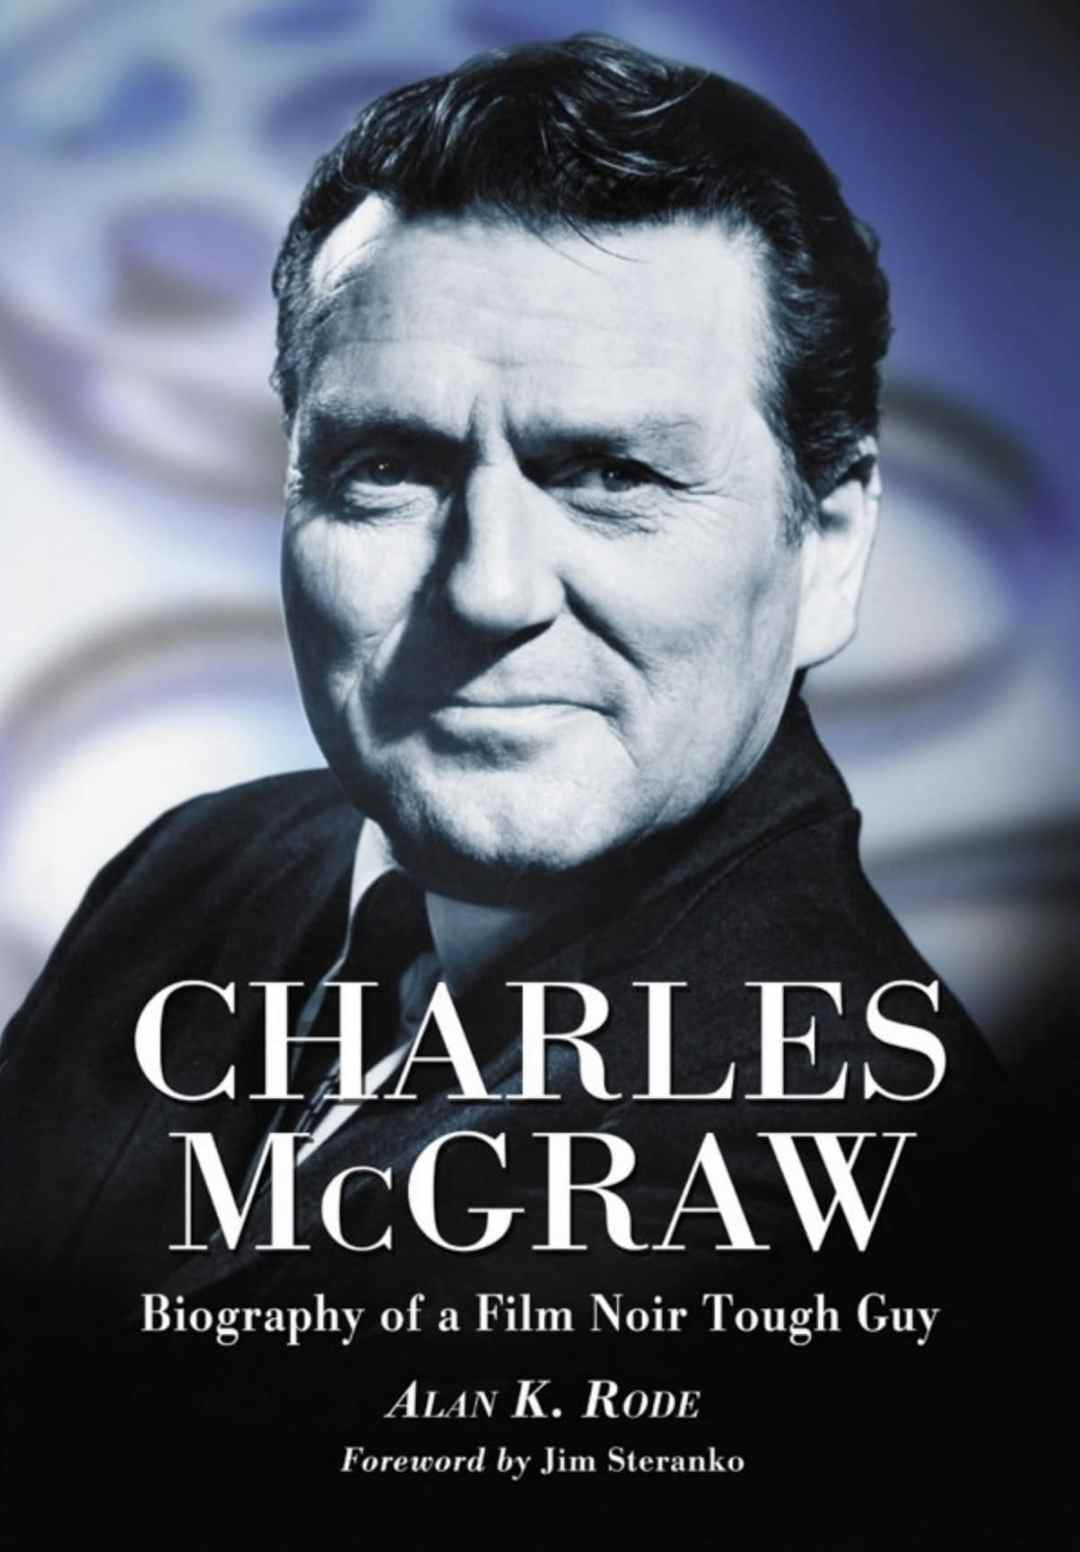 photographic book cover of actor Charles McGraw